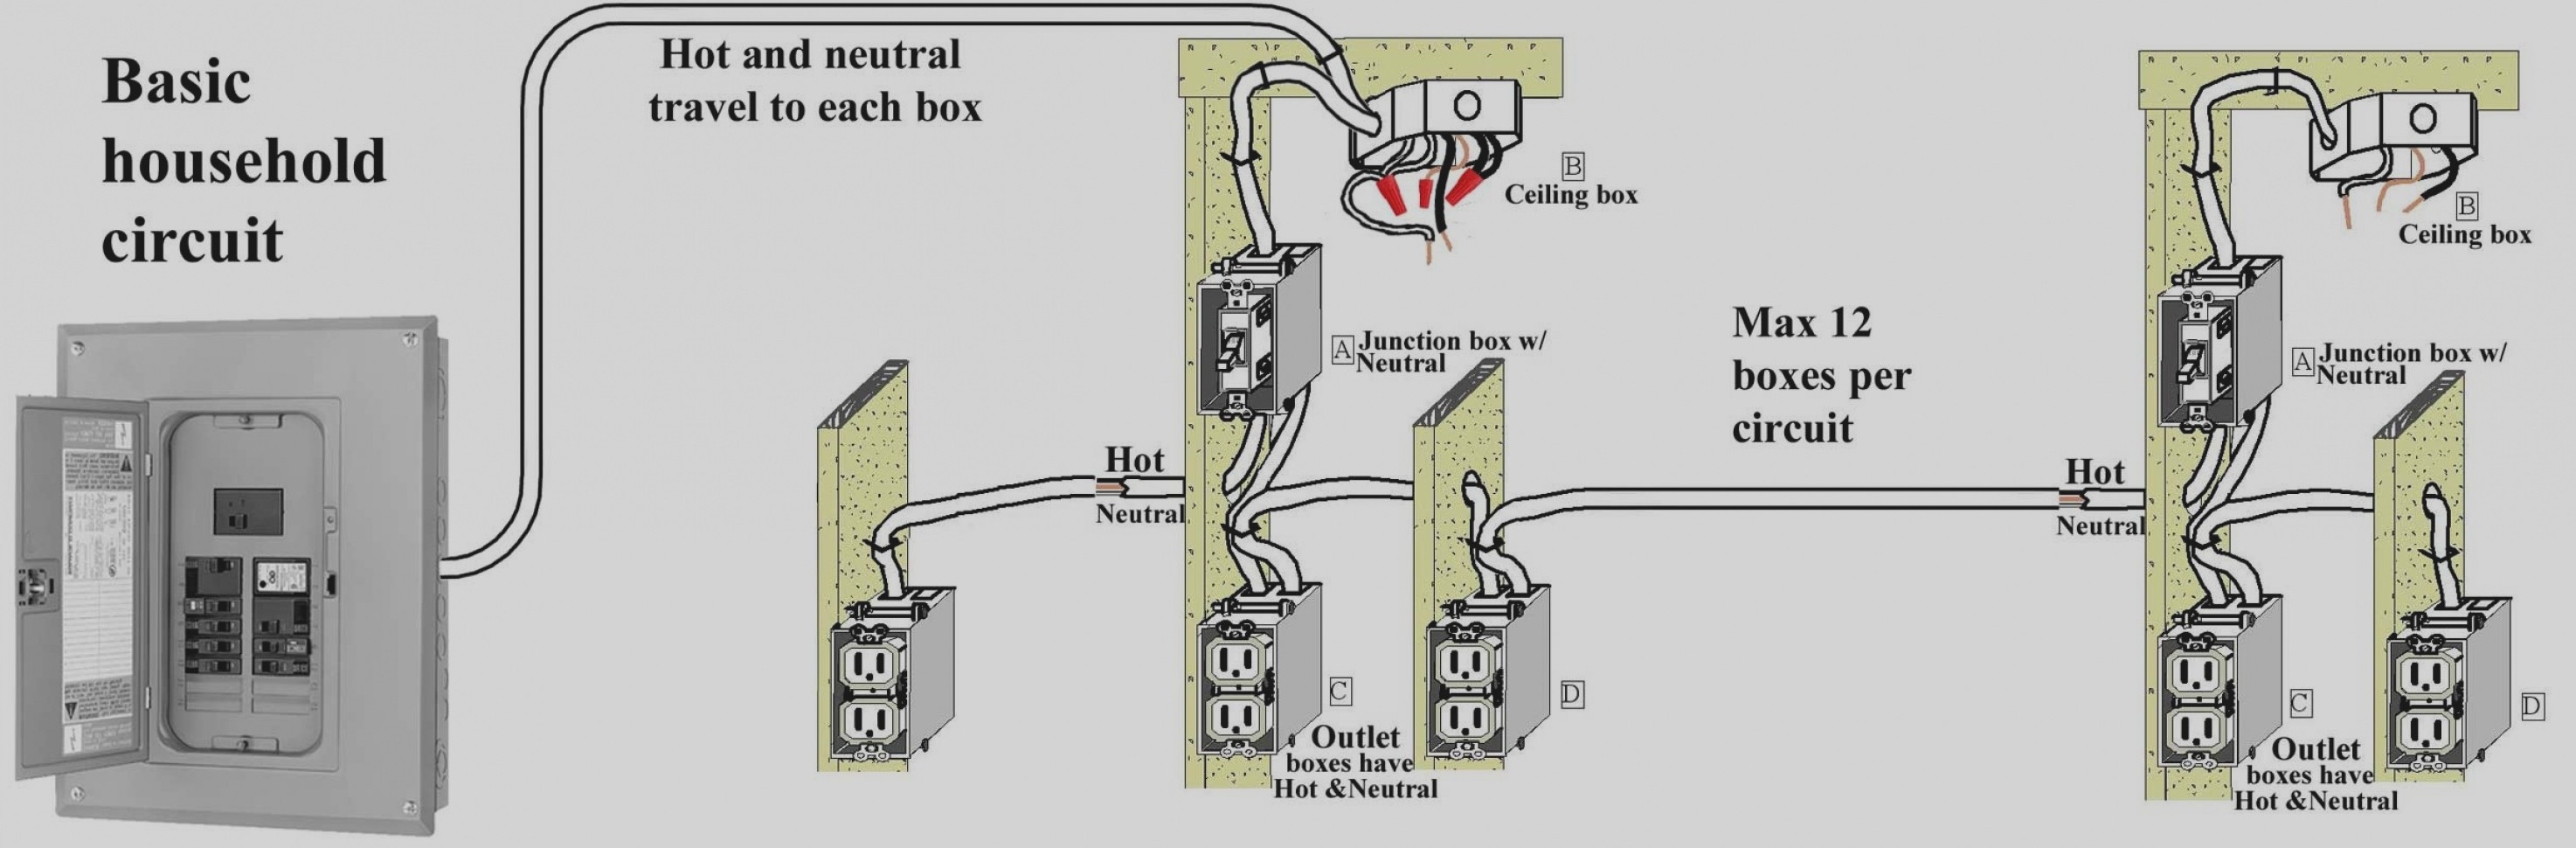 Simple Electrical Wiring Diagrams Trend Basic Household Wiring Diagram Switch Nz Bathroom Of Simple Electrical Wiring Diagrams